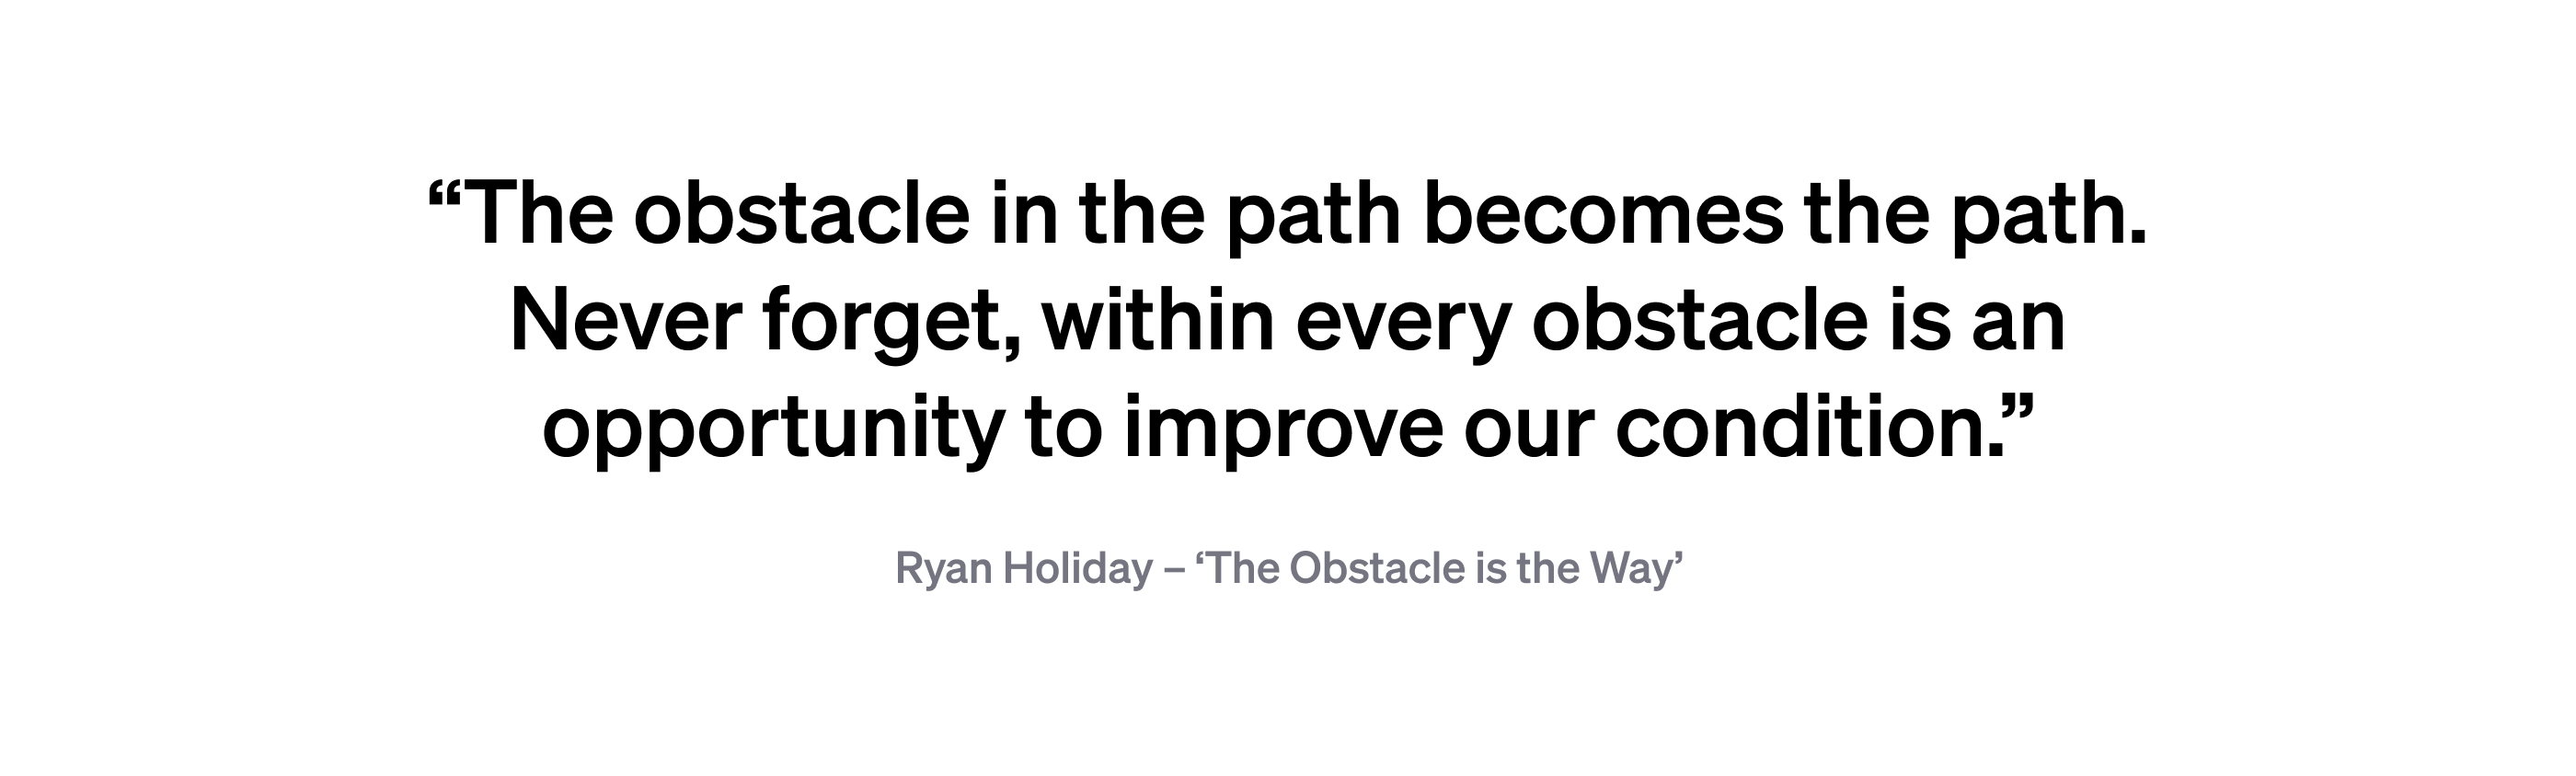 "Quote: ""The obstacle in the path becomes the path. Never forget, within every obstacle is an opportunity to improve our condition."" — Ryan Holiday"